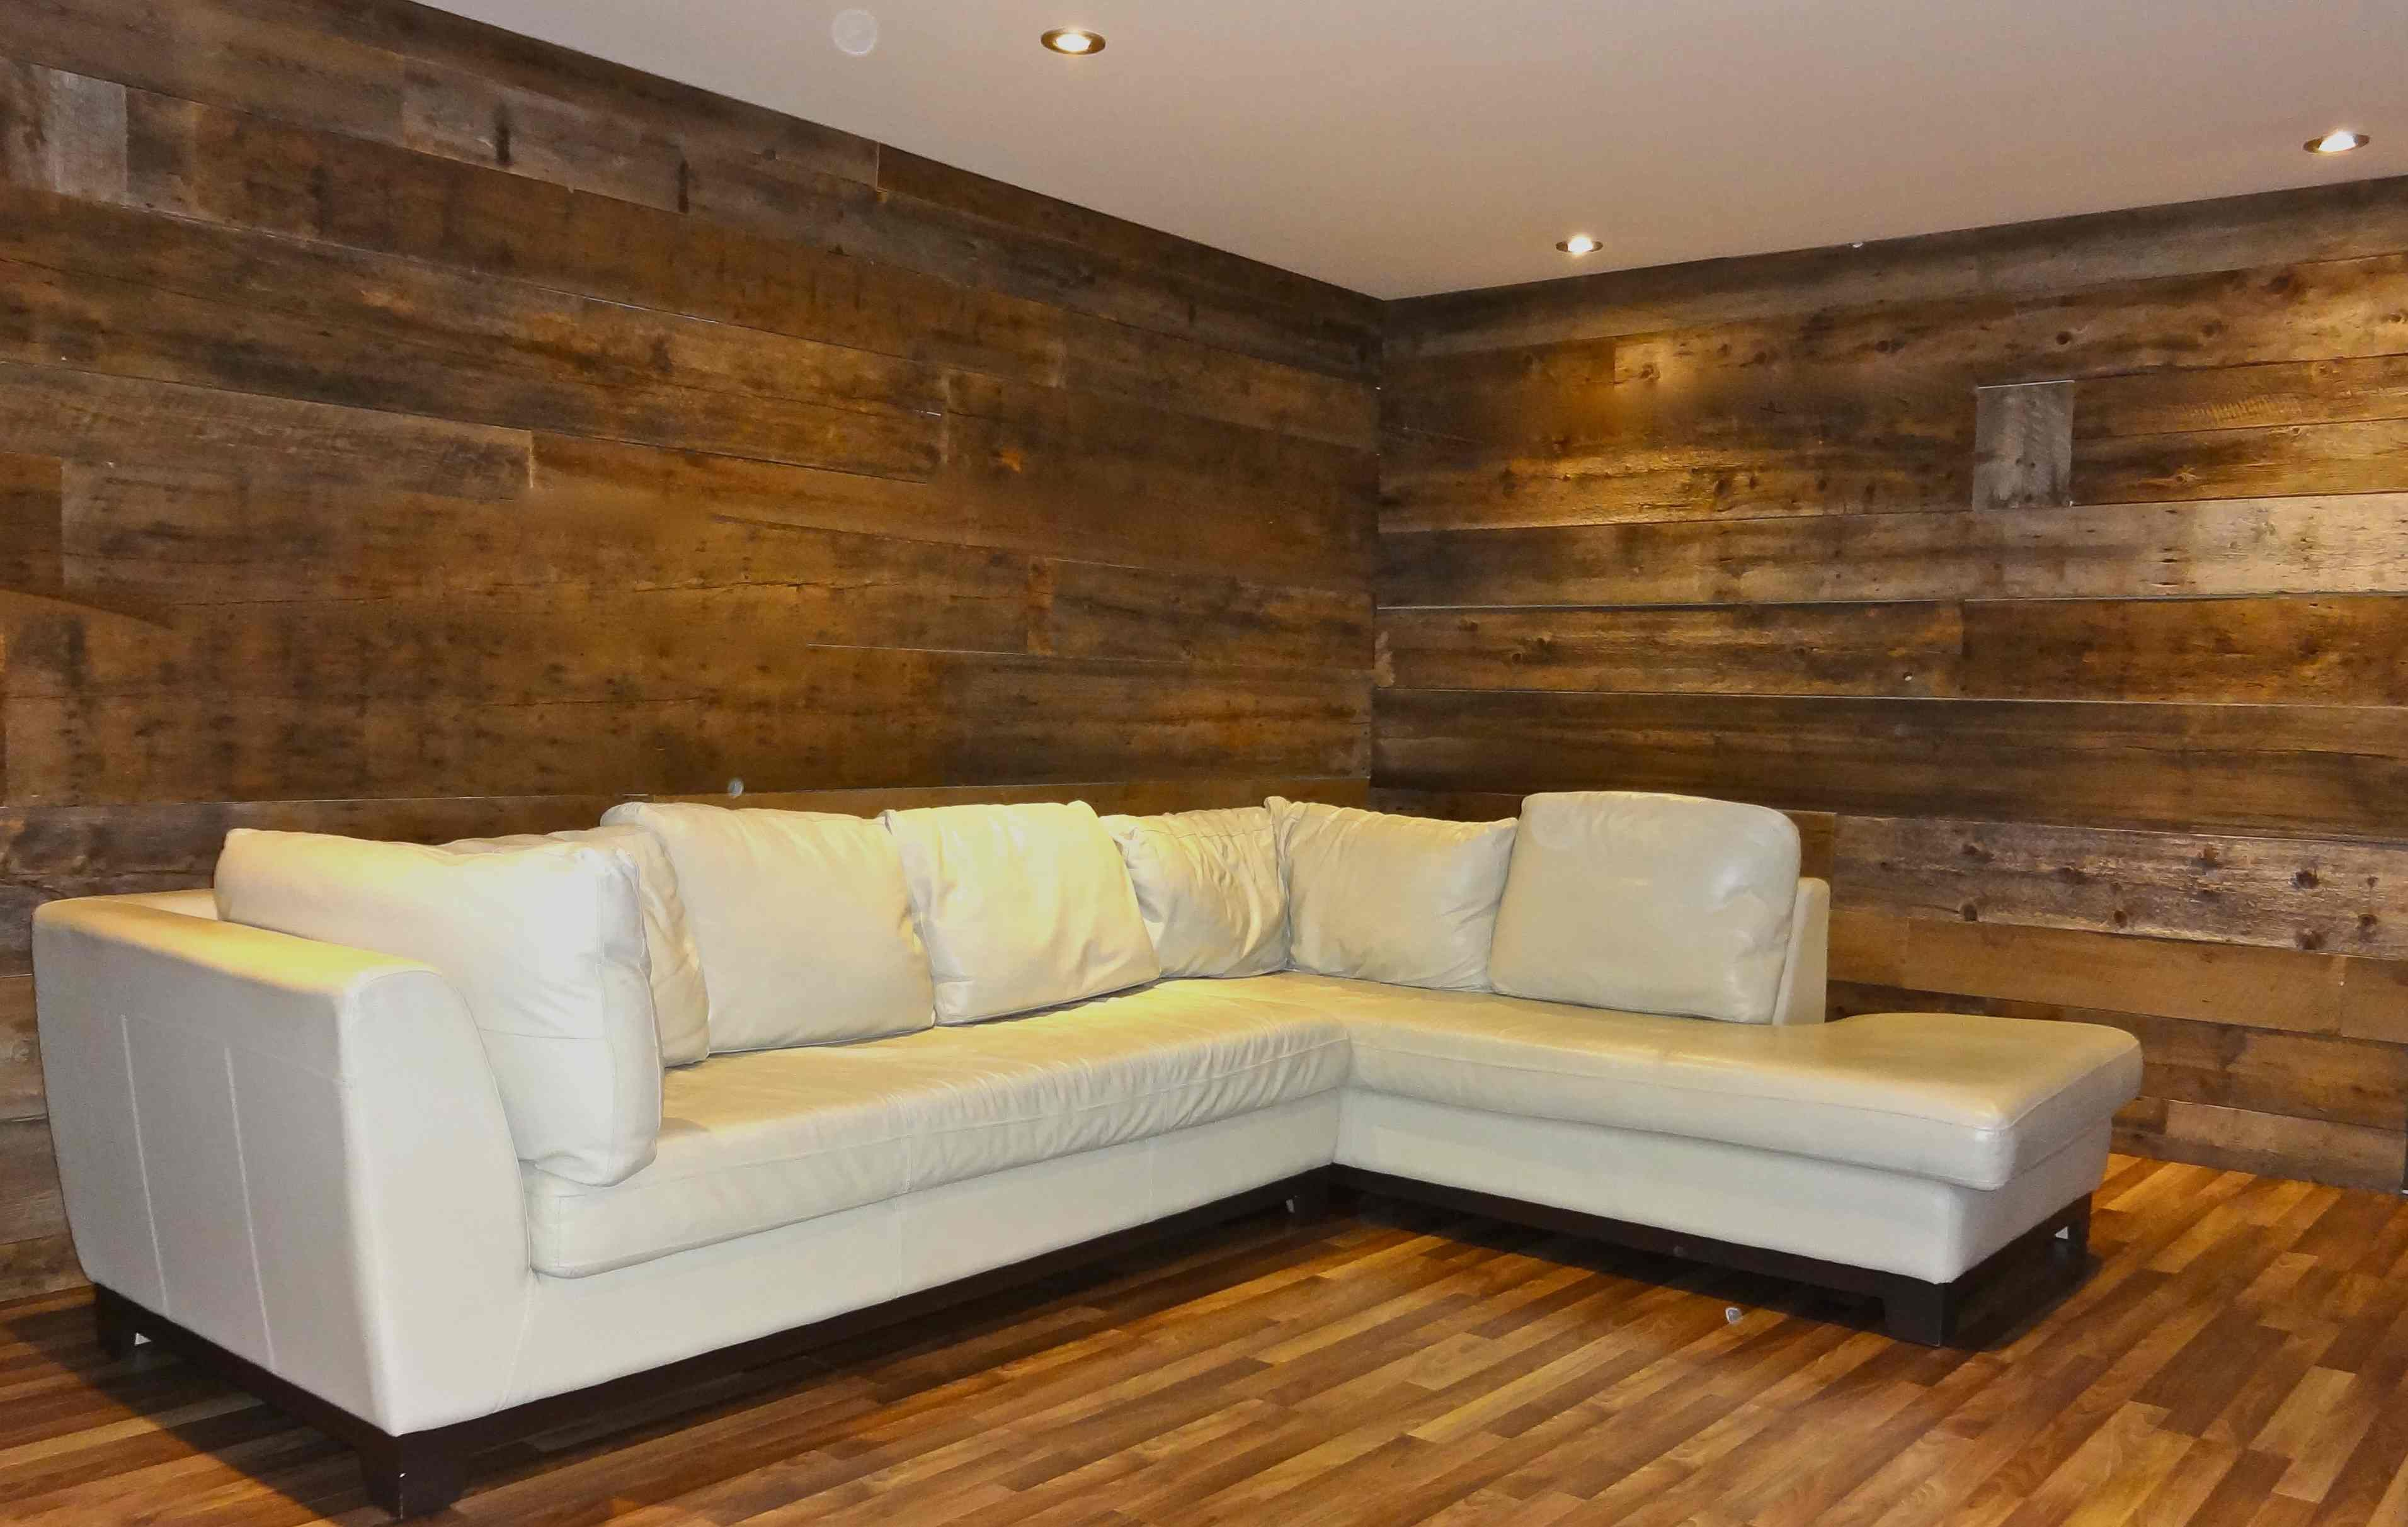 Pin by danielle pelletier on reclaimed wood wall pinterest for Revetement sol salle de bain sur plancher bois